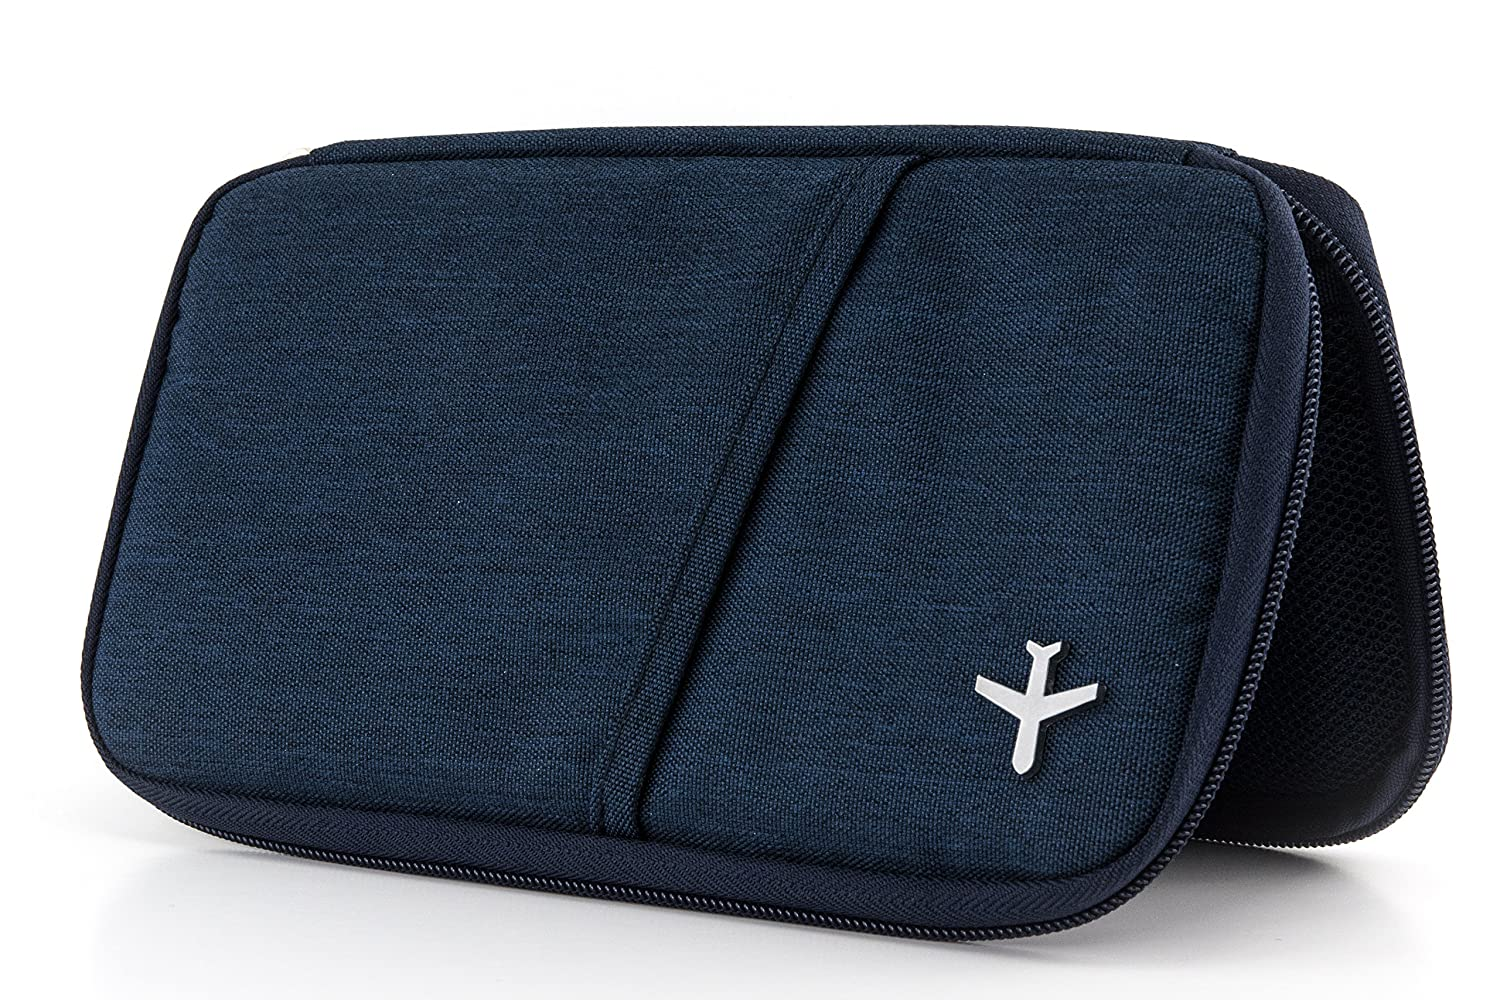 TROIKA-original orange dark blue TROIKA SAFE FLIGHT for RFID chips TRV20//DB polyester zipper Case for travel documents with fraud prevention 12 interior compartments